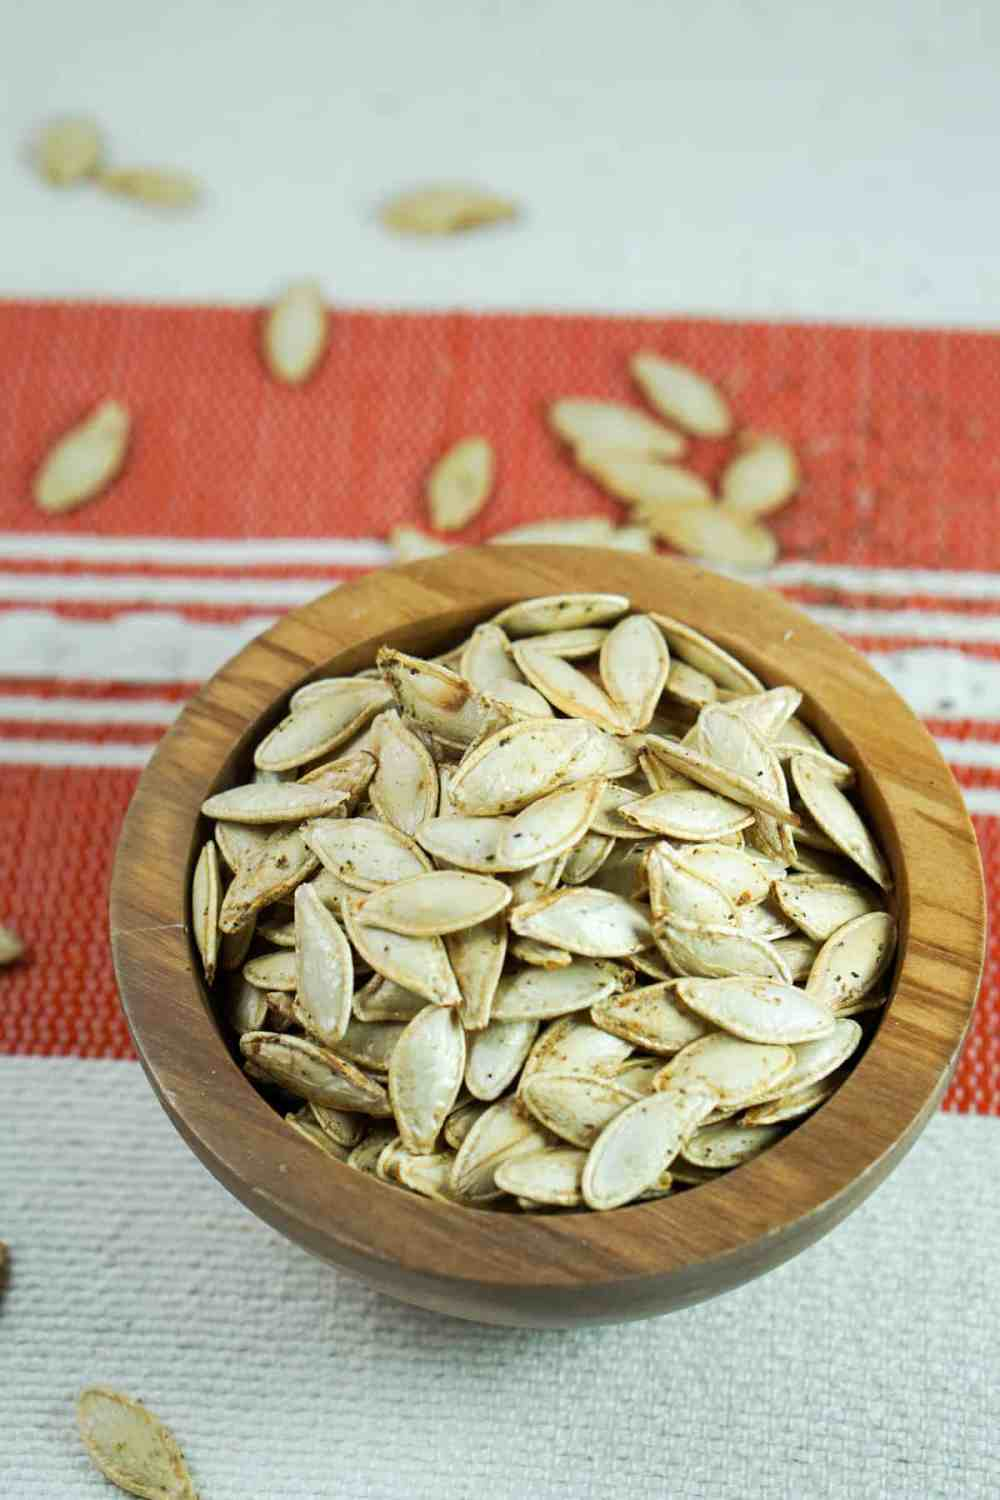 This toasted salted pumpkin seeds recipe is ridiculously easy. Wash & strain, season, dry and roast for deliciously crisp seeds. Then crunch away and enjoy!